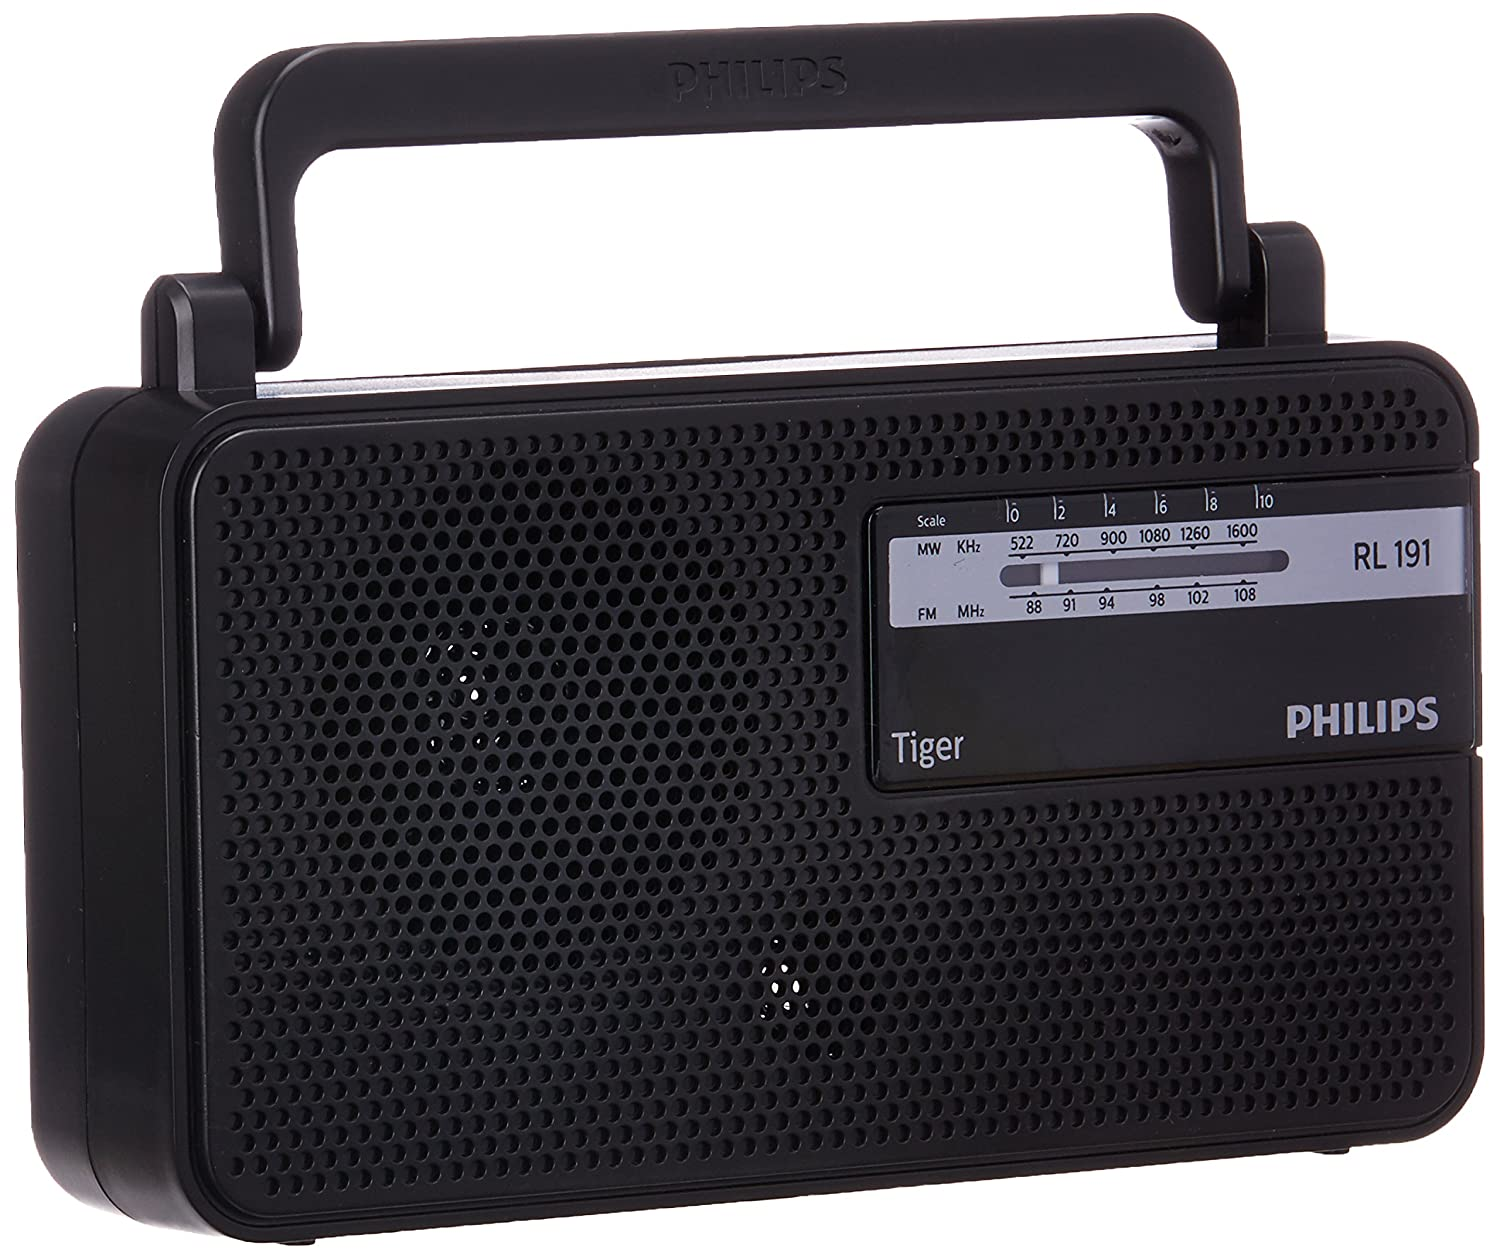 Amazon buy philips rl191 fm radio online at low prices in india amazon buy philips rl191 fm radio online at low prices in india philips reviews ratings fandeluxe Images